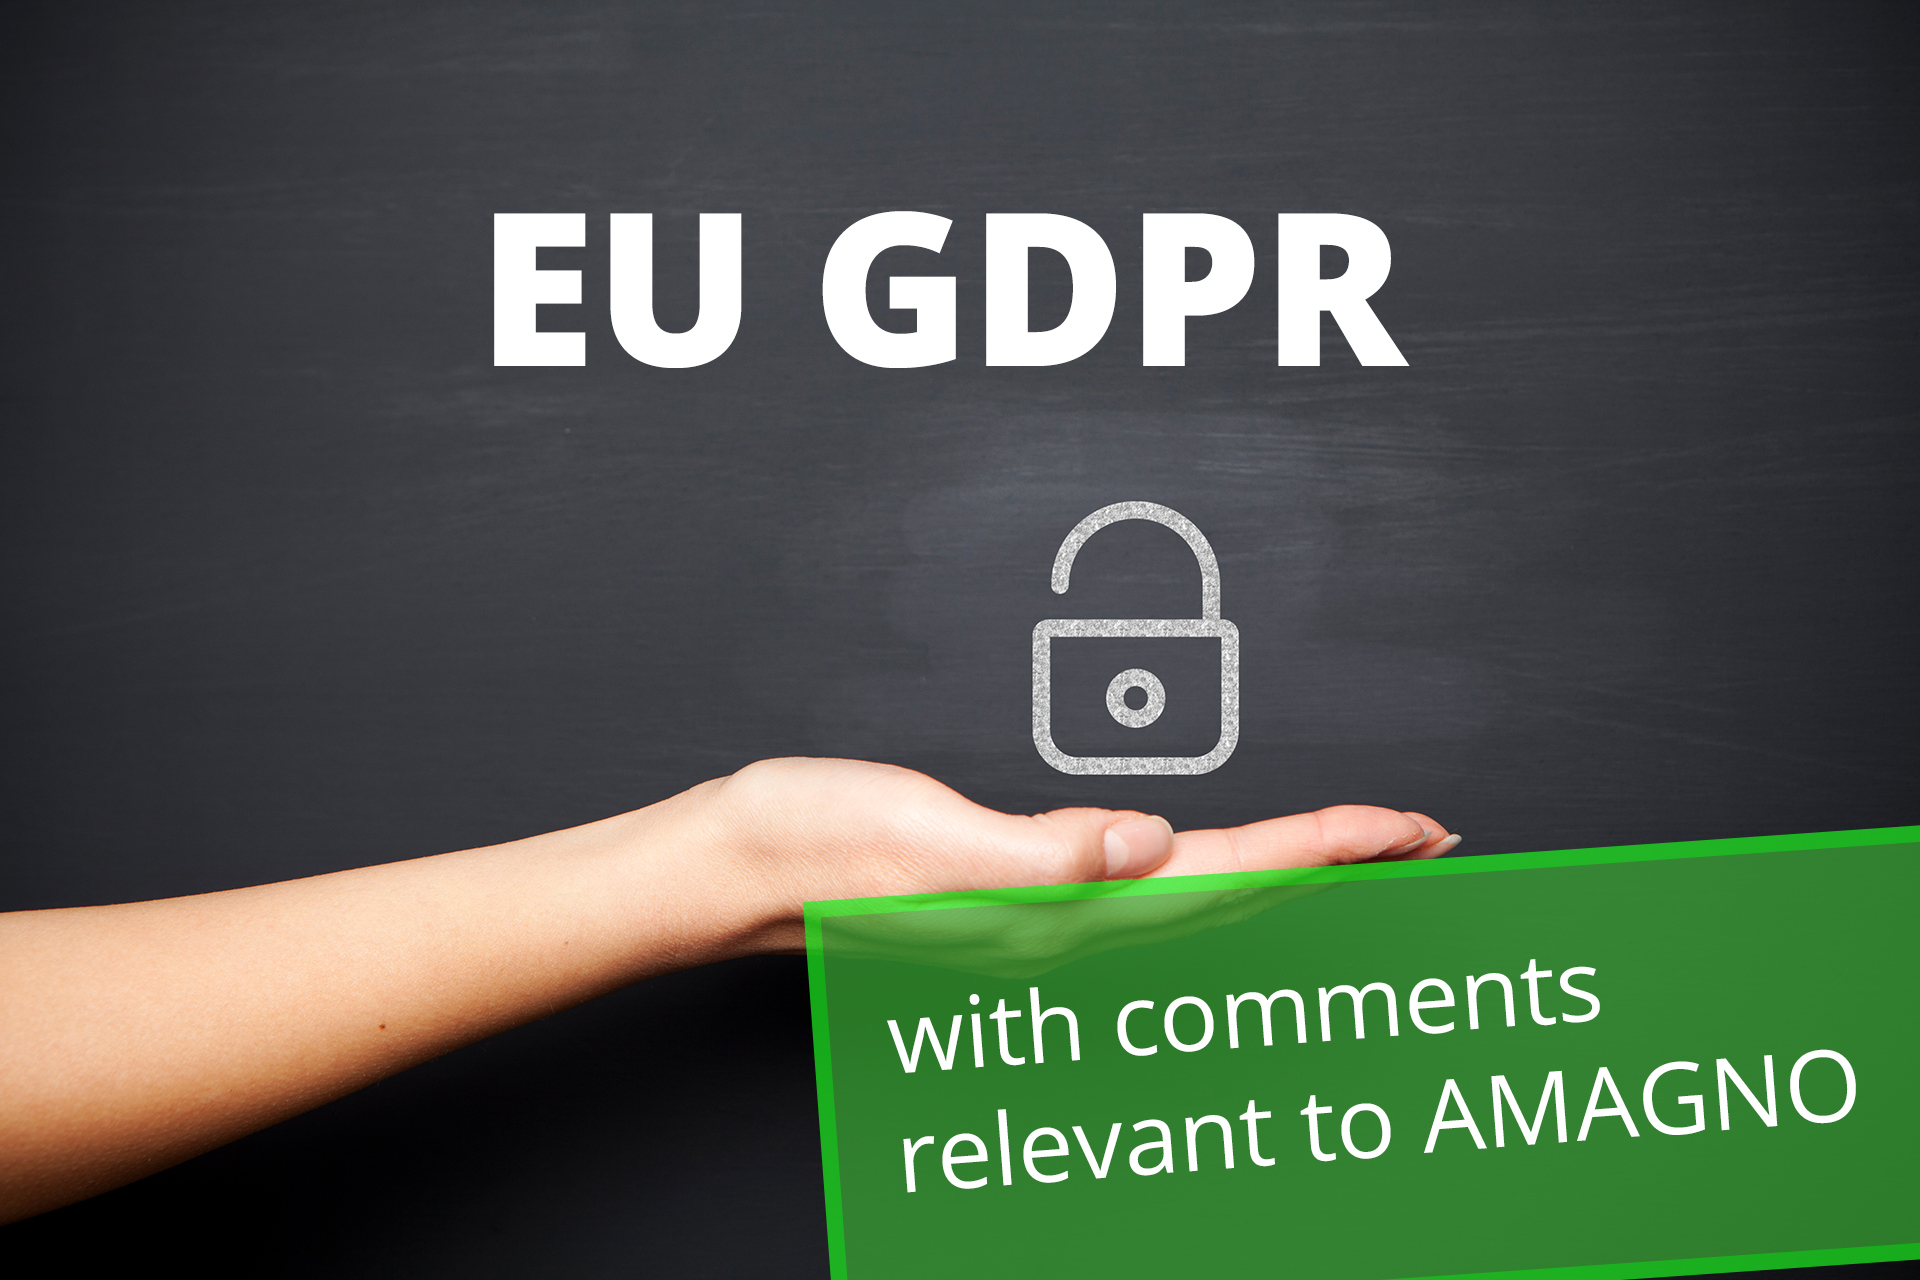 Guest Post: New EU Data Protection Regulation (EU GDPR) in 2018